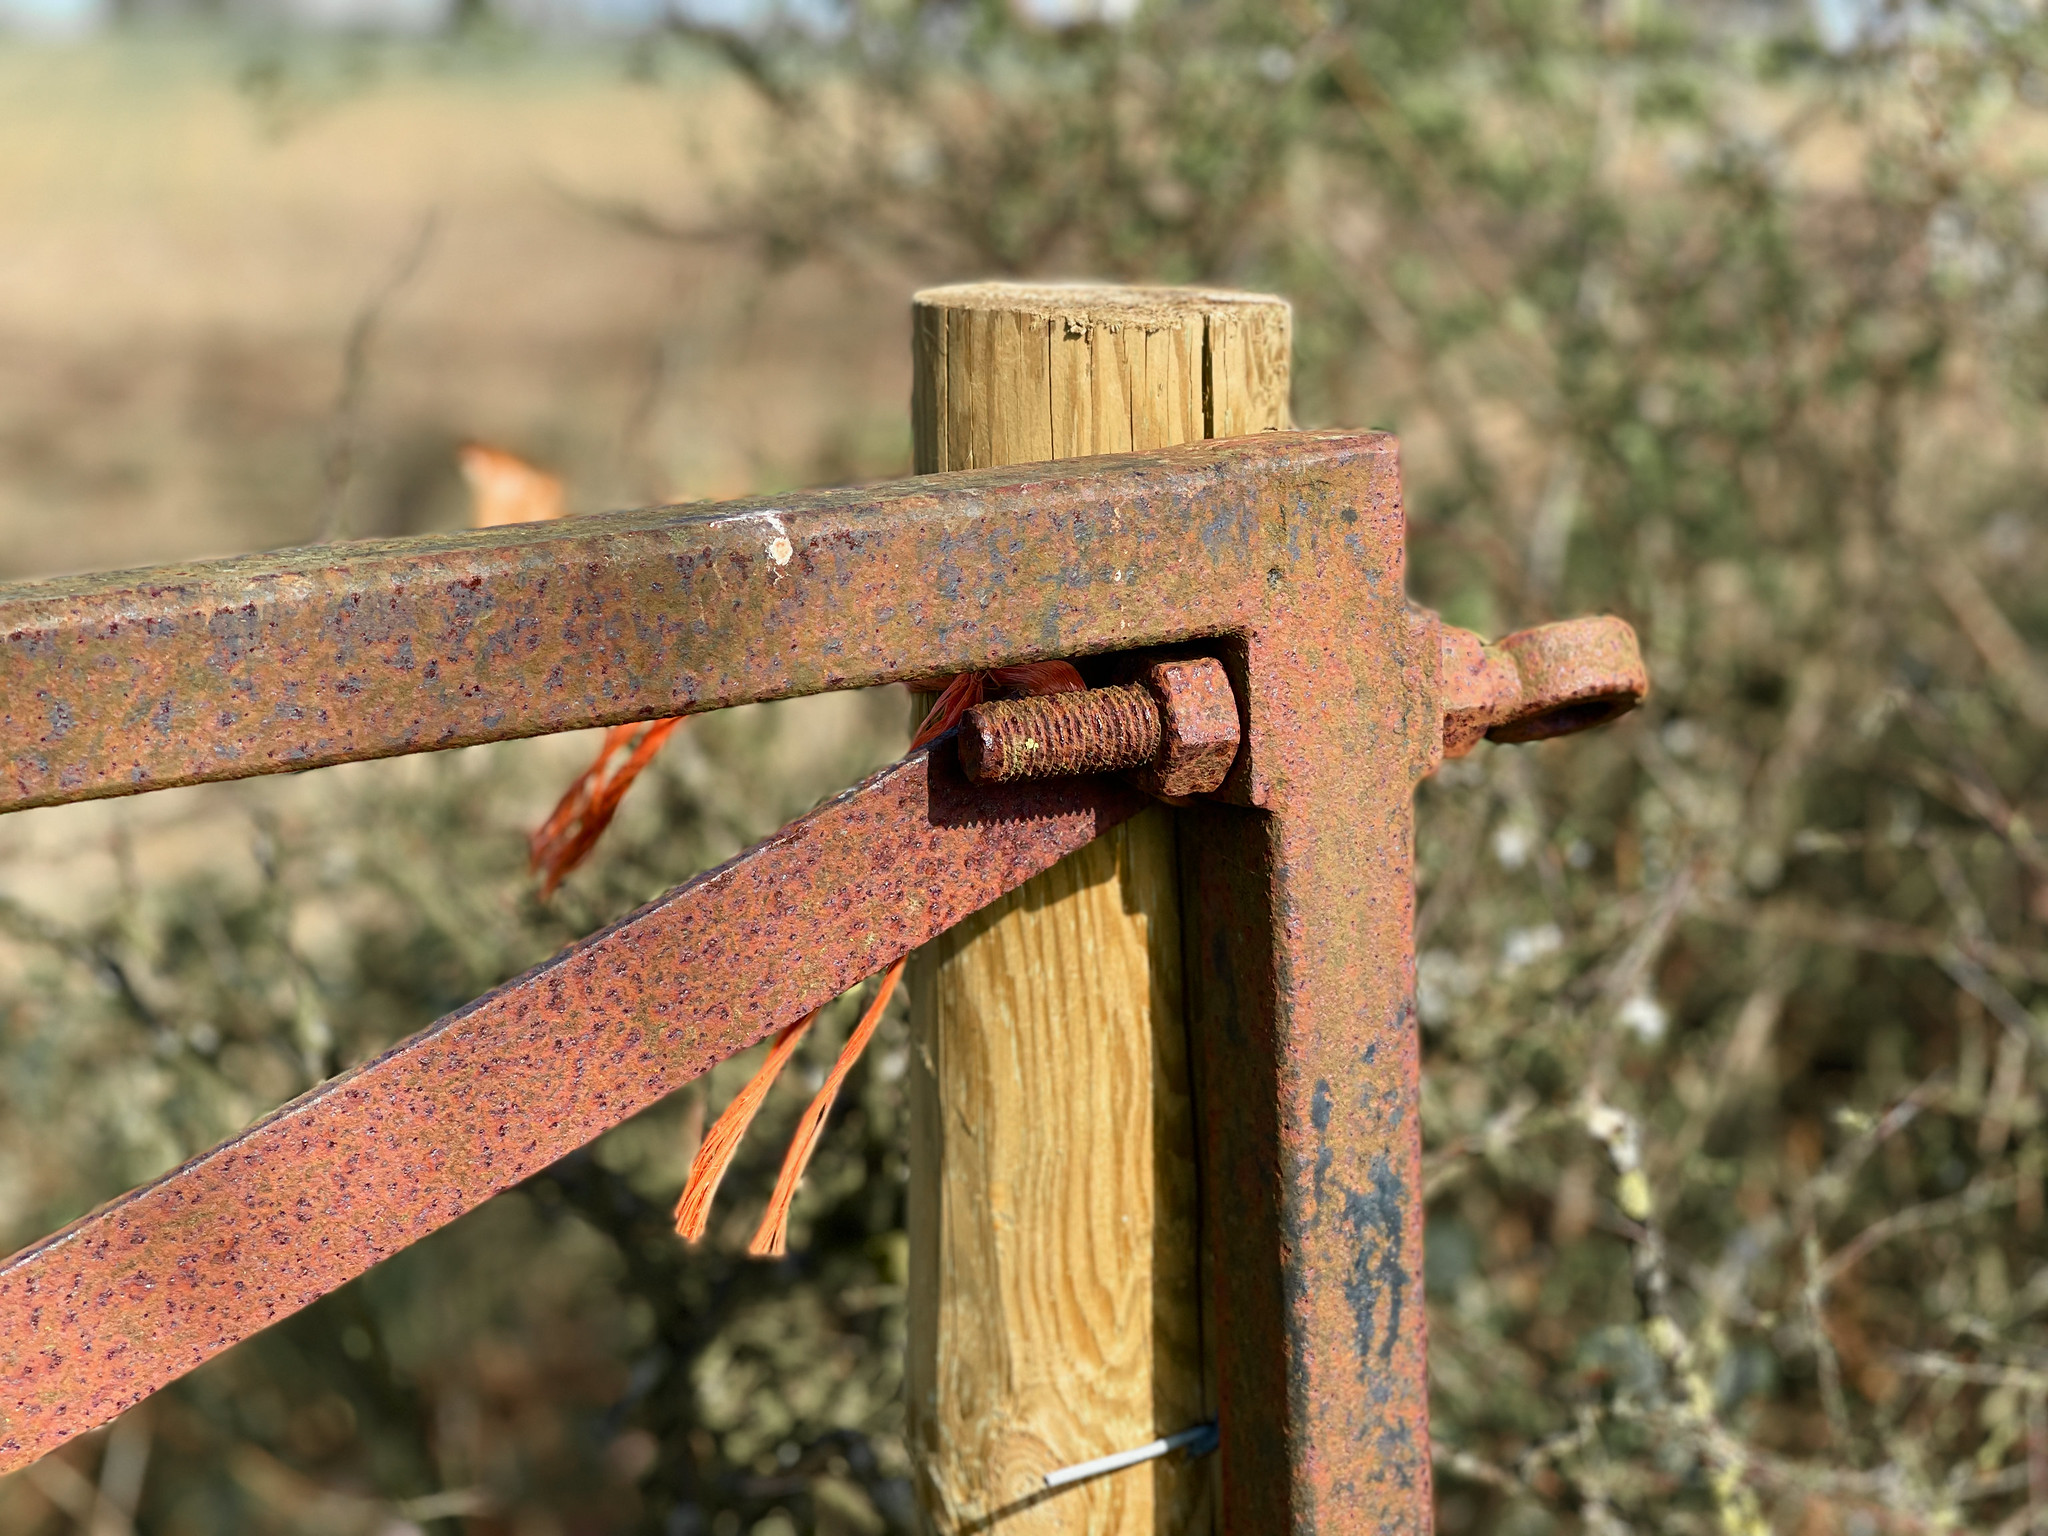 Gate leaning against post held with baler twine